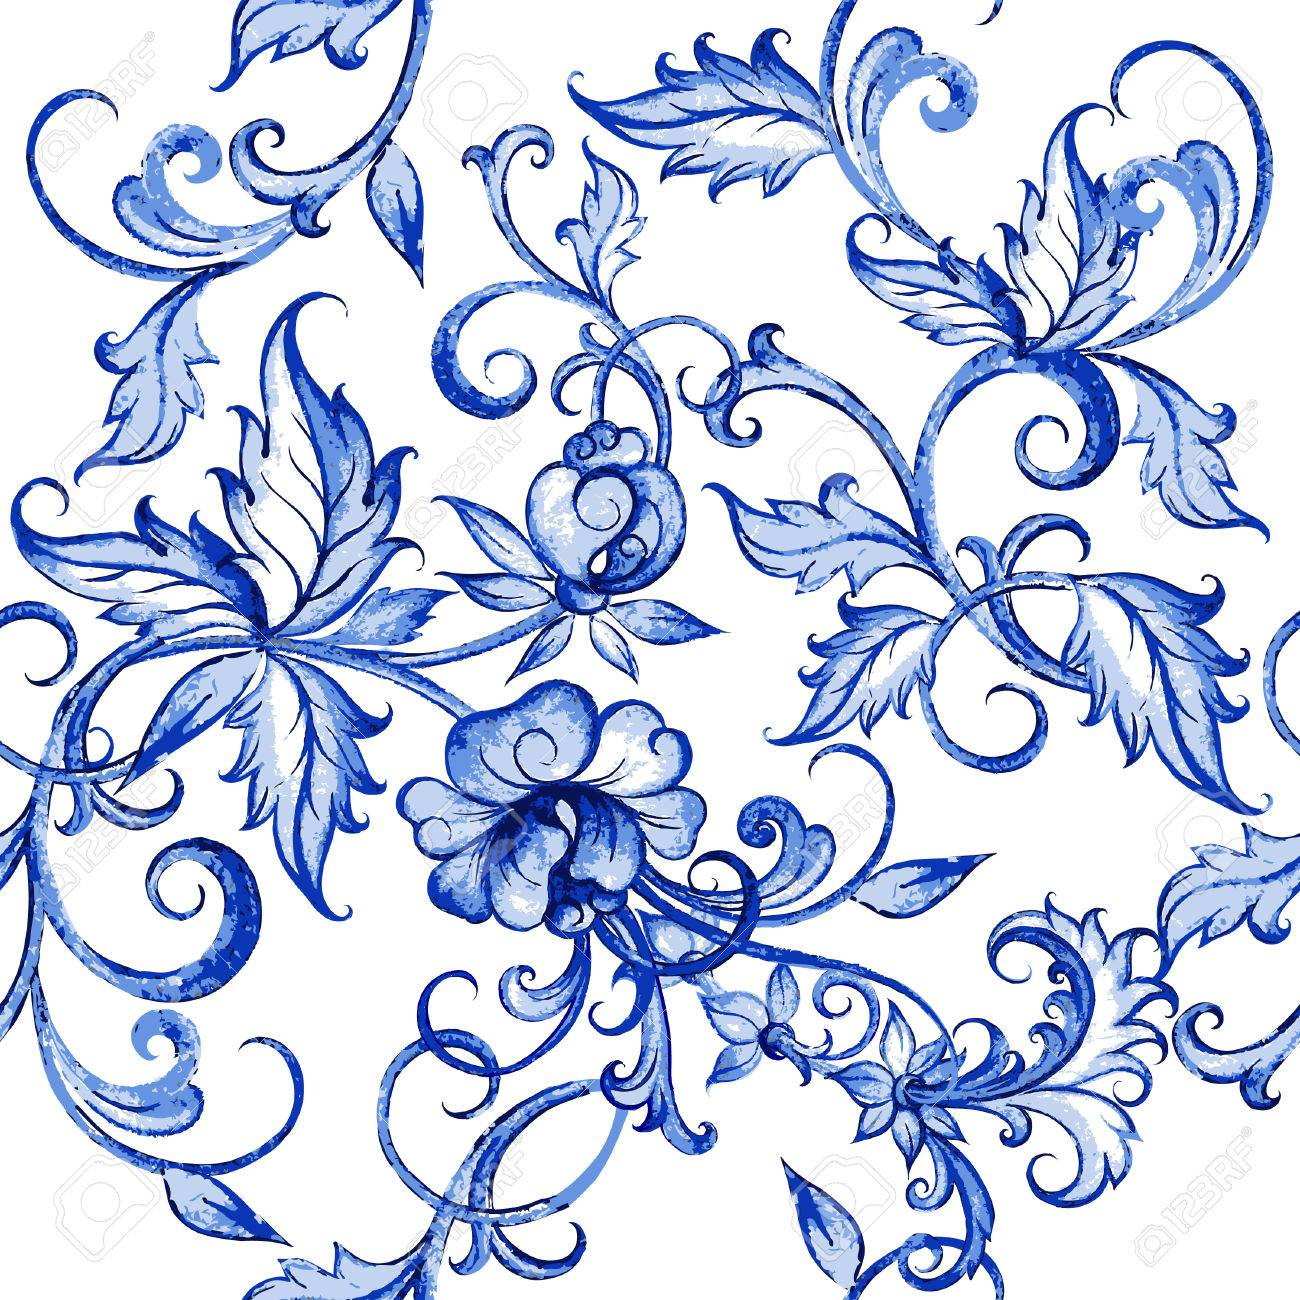 Blue flowers drawing at getdrawings free for personal use blue 1300x1300 vector floral watercolor texture pattern with flowerswatercolor izmirmasajfo